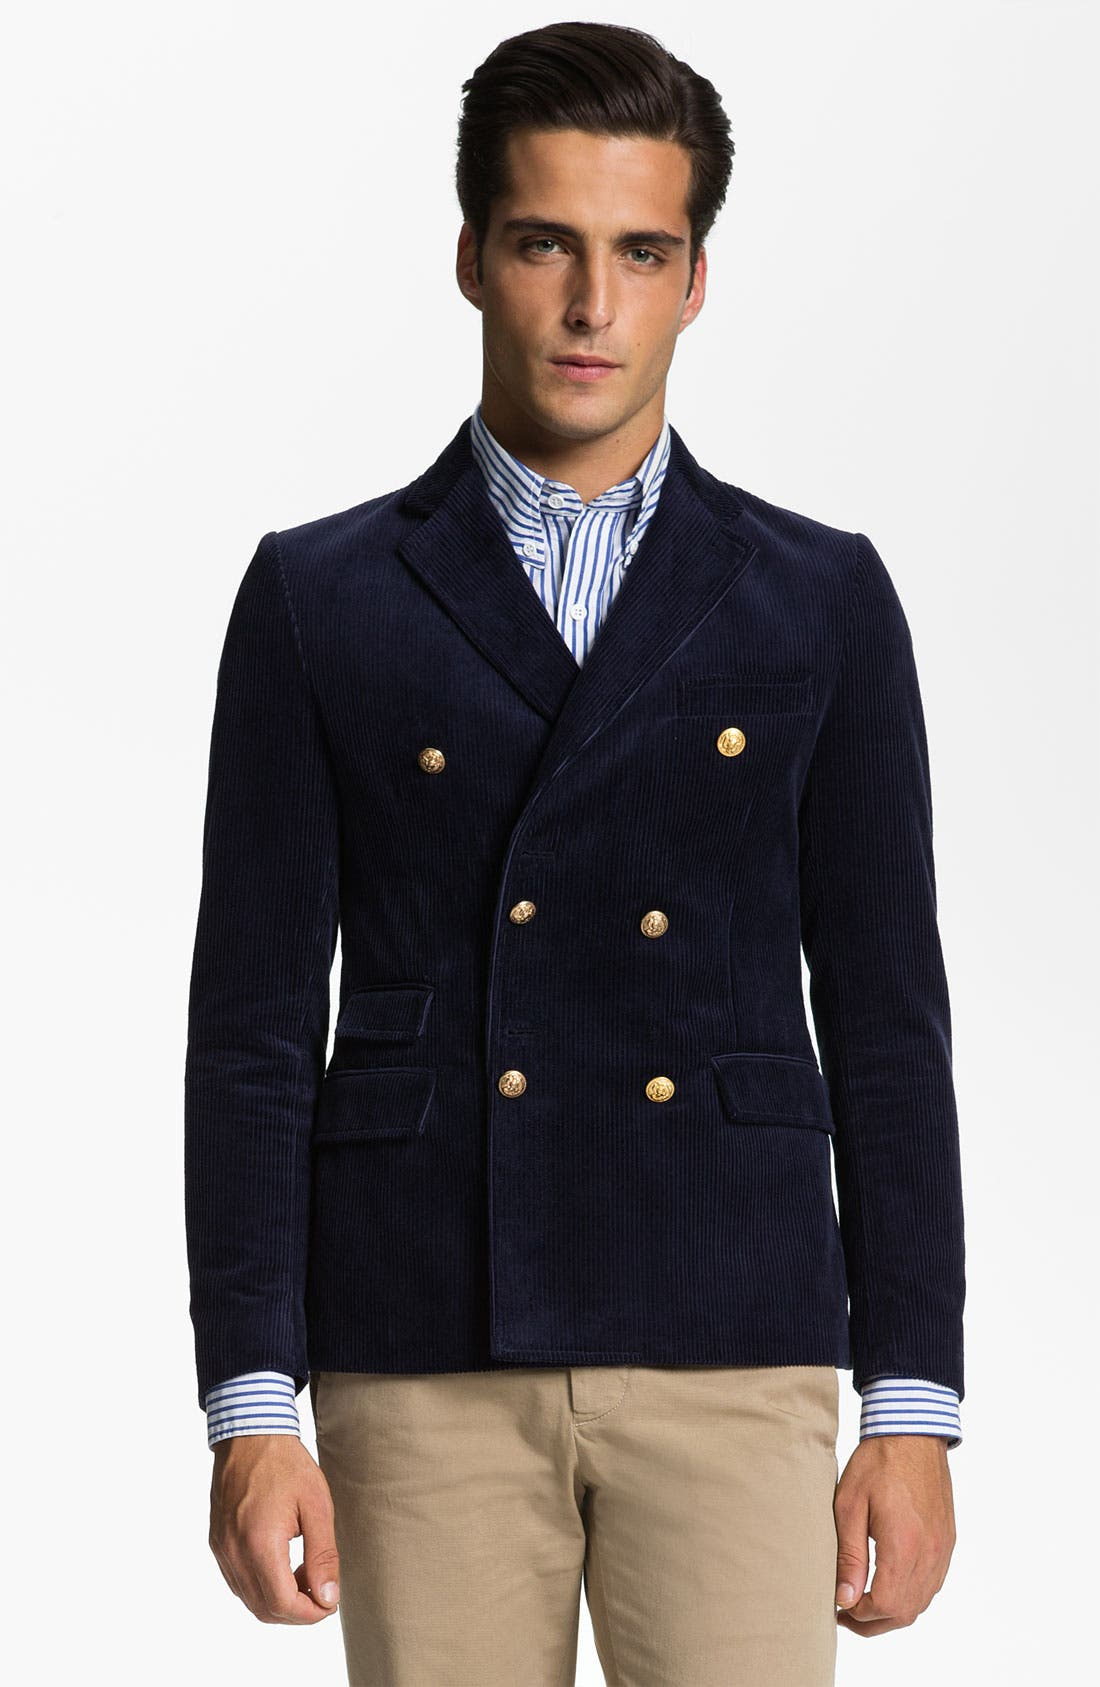 Main Image - Band of Outsiders Corduroy Captain's Jacket